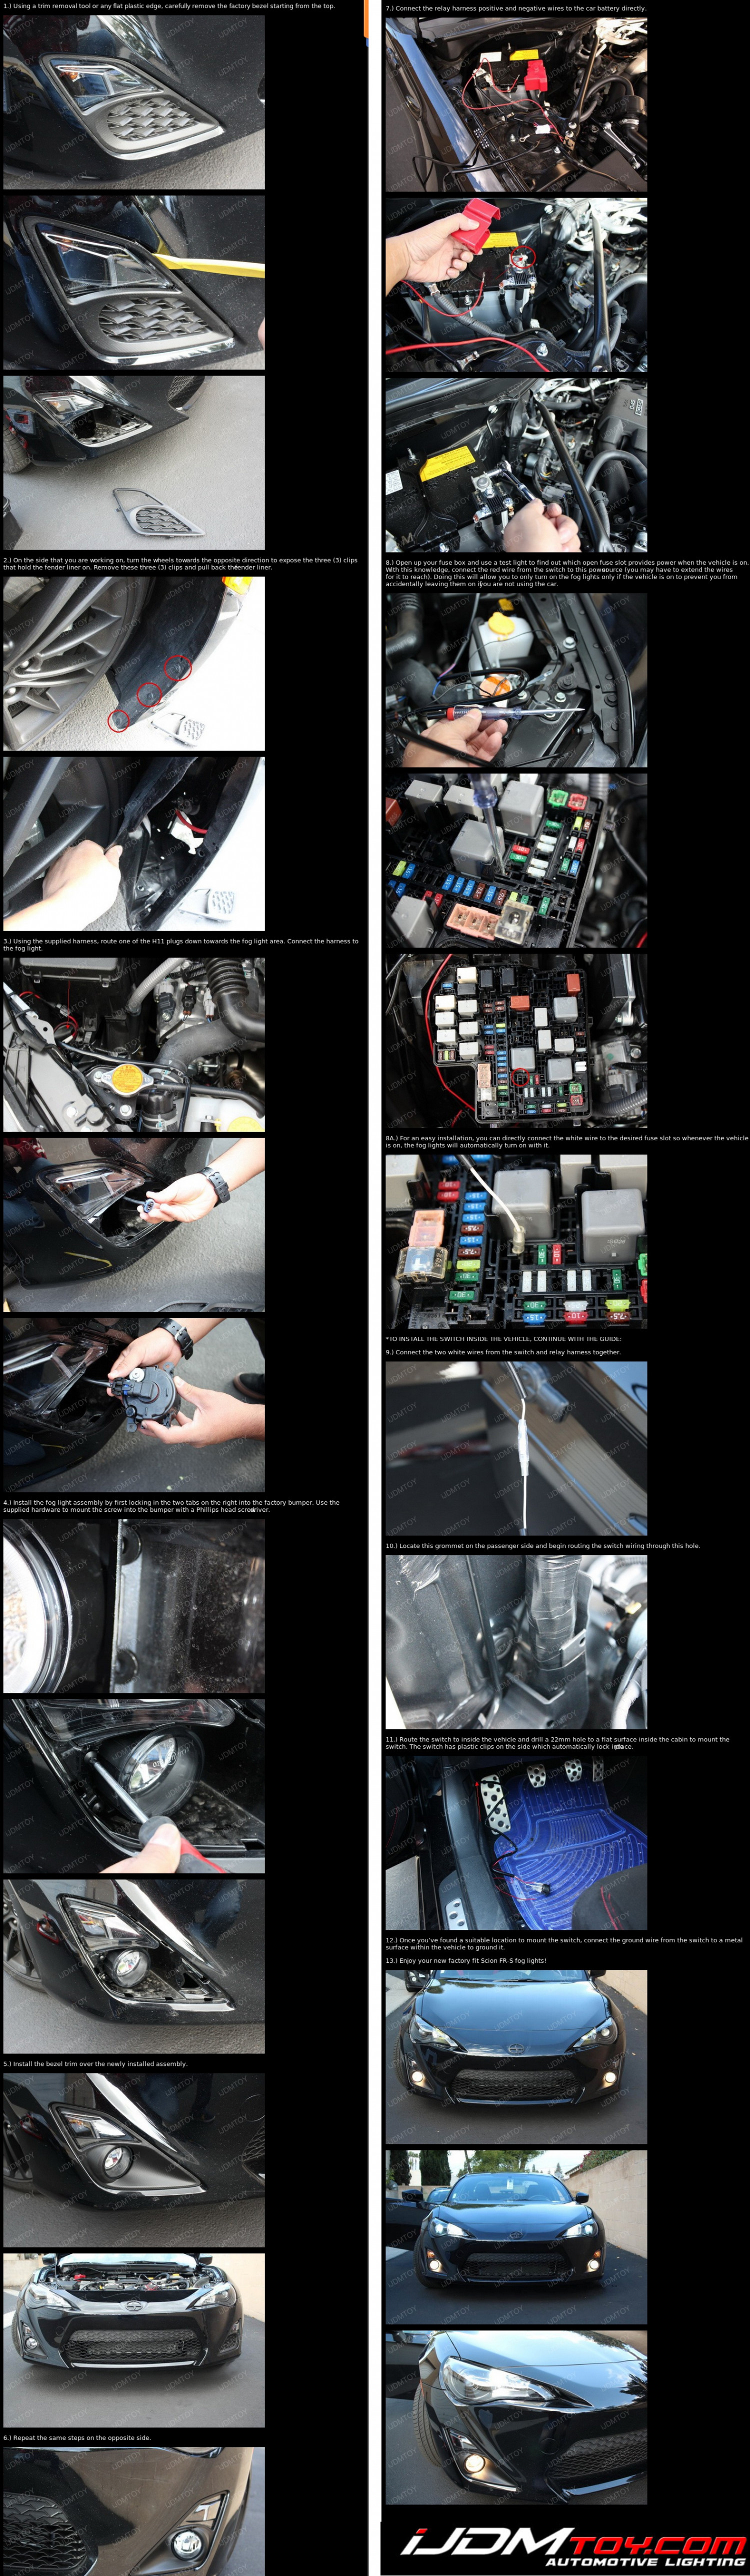 How To Install Fog Lights For Scion FR-S Infographic